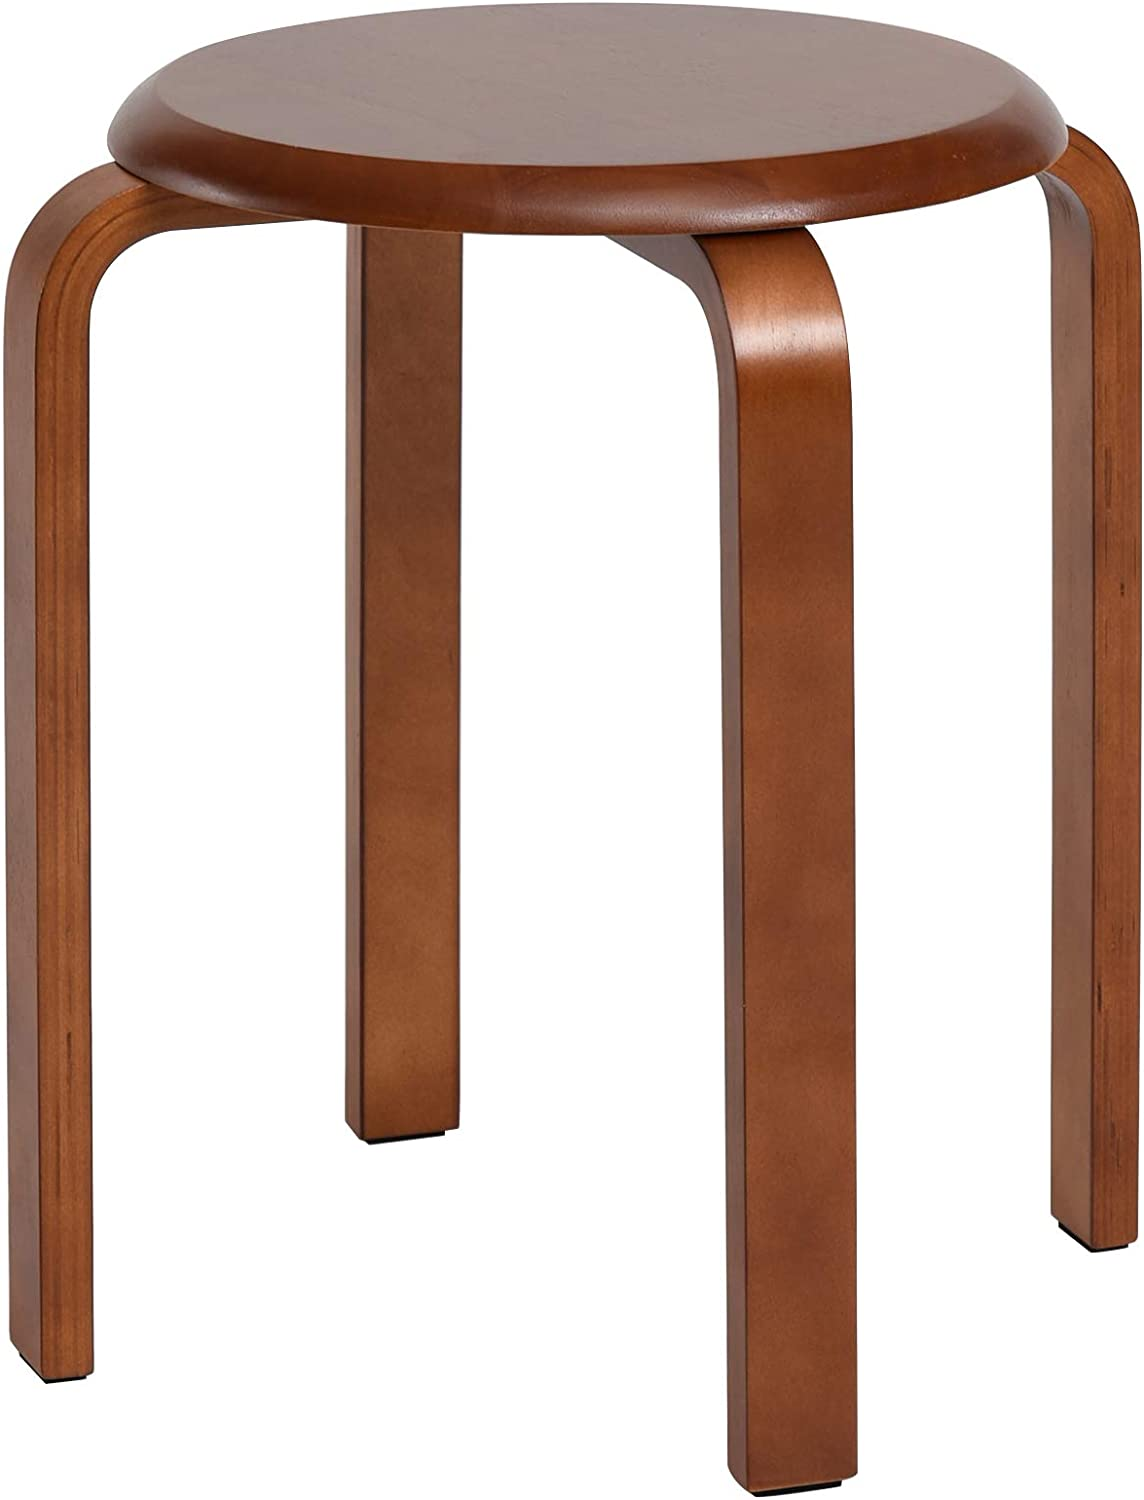 IBUYKE Solid Wood Bar Stool, Backless Counter Seat, Stackable Round Stool for Dinning, Kitchen, Home, Garden, Living and Class Room, Brown, URF-635